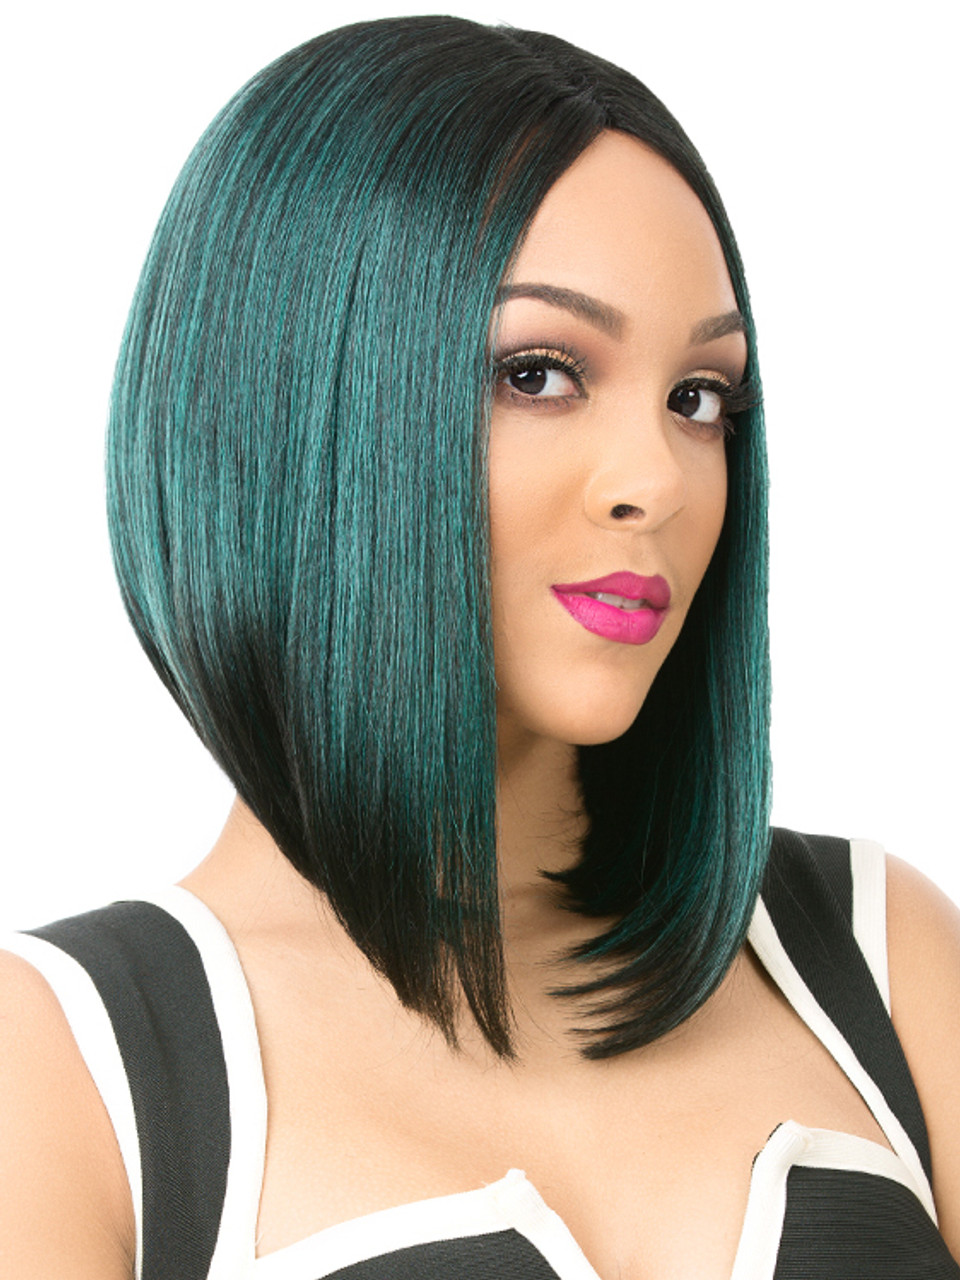 Kandle Lace Front Wig